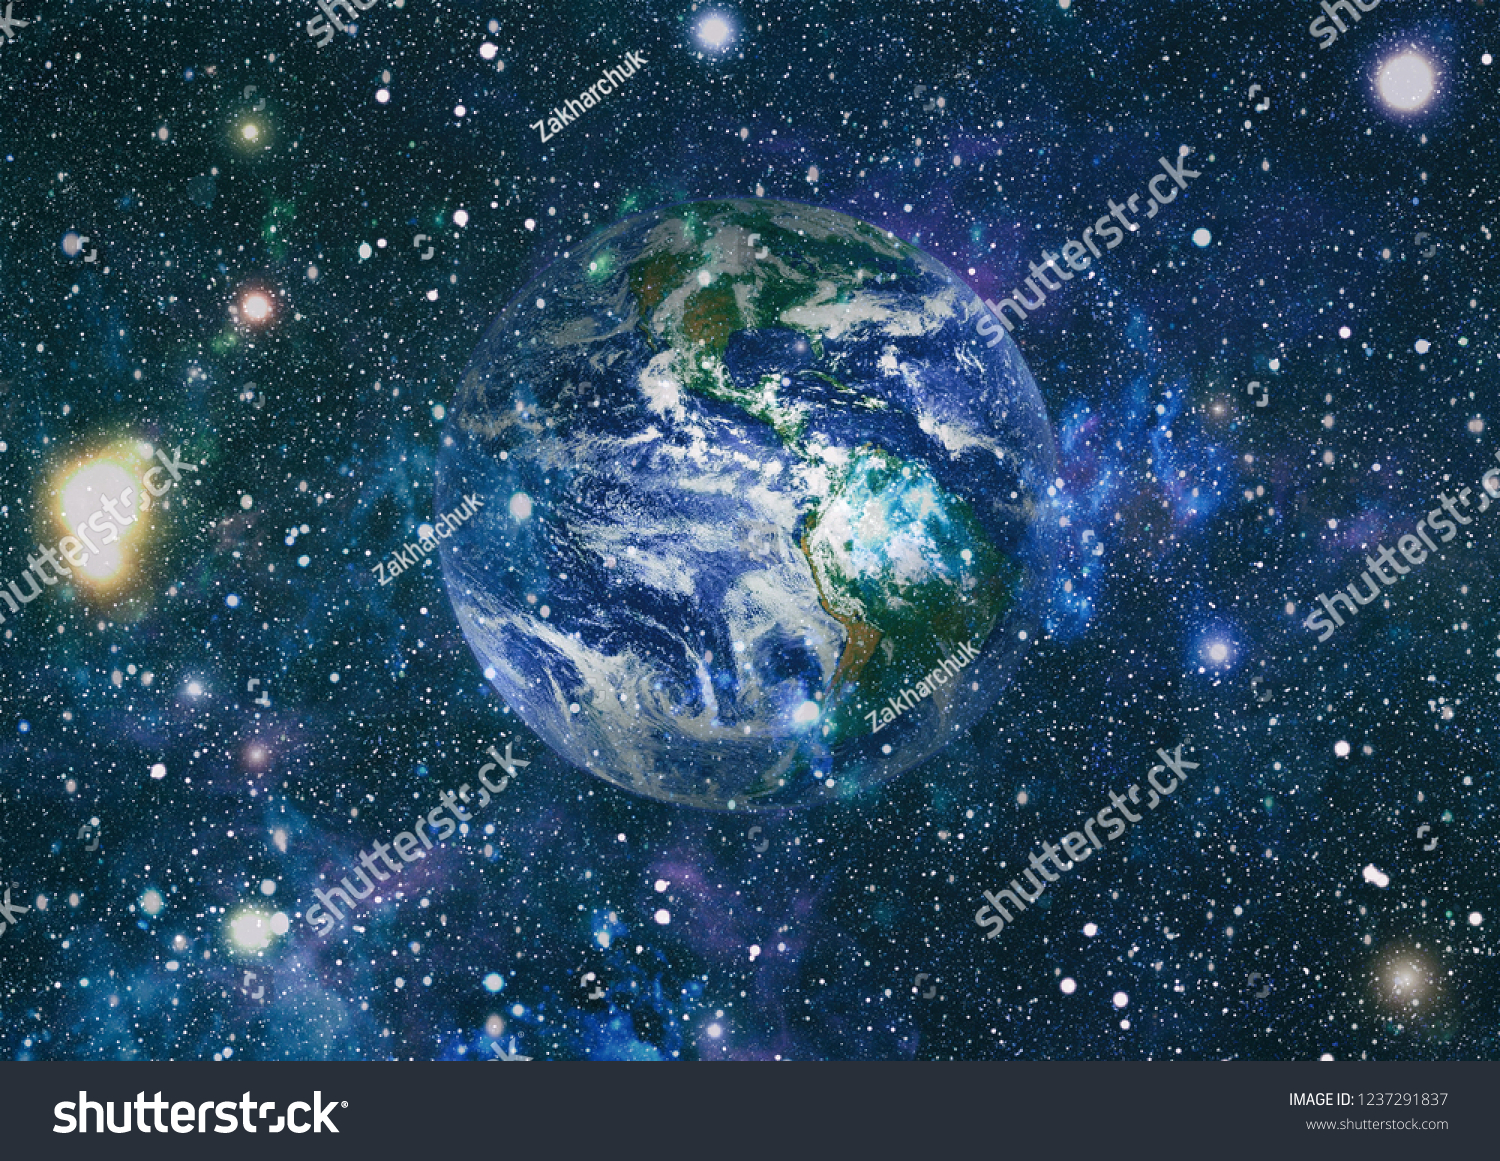 Earth Outer Space Collage Abstract Wallpaper Stock Photo ... on home science, home tree, home tower, home truck, home color, home fire, home of superman krypton, home community, home of superman metropolis illinois, home flower, home ice, home food, home satellite, home school,